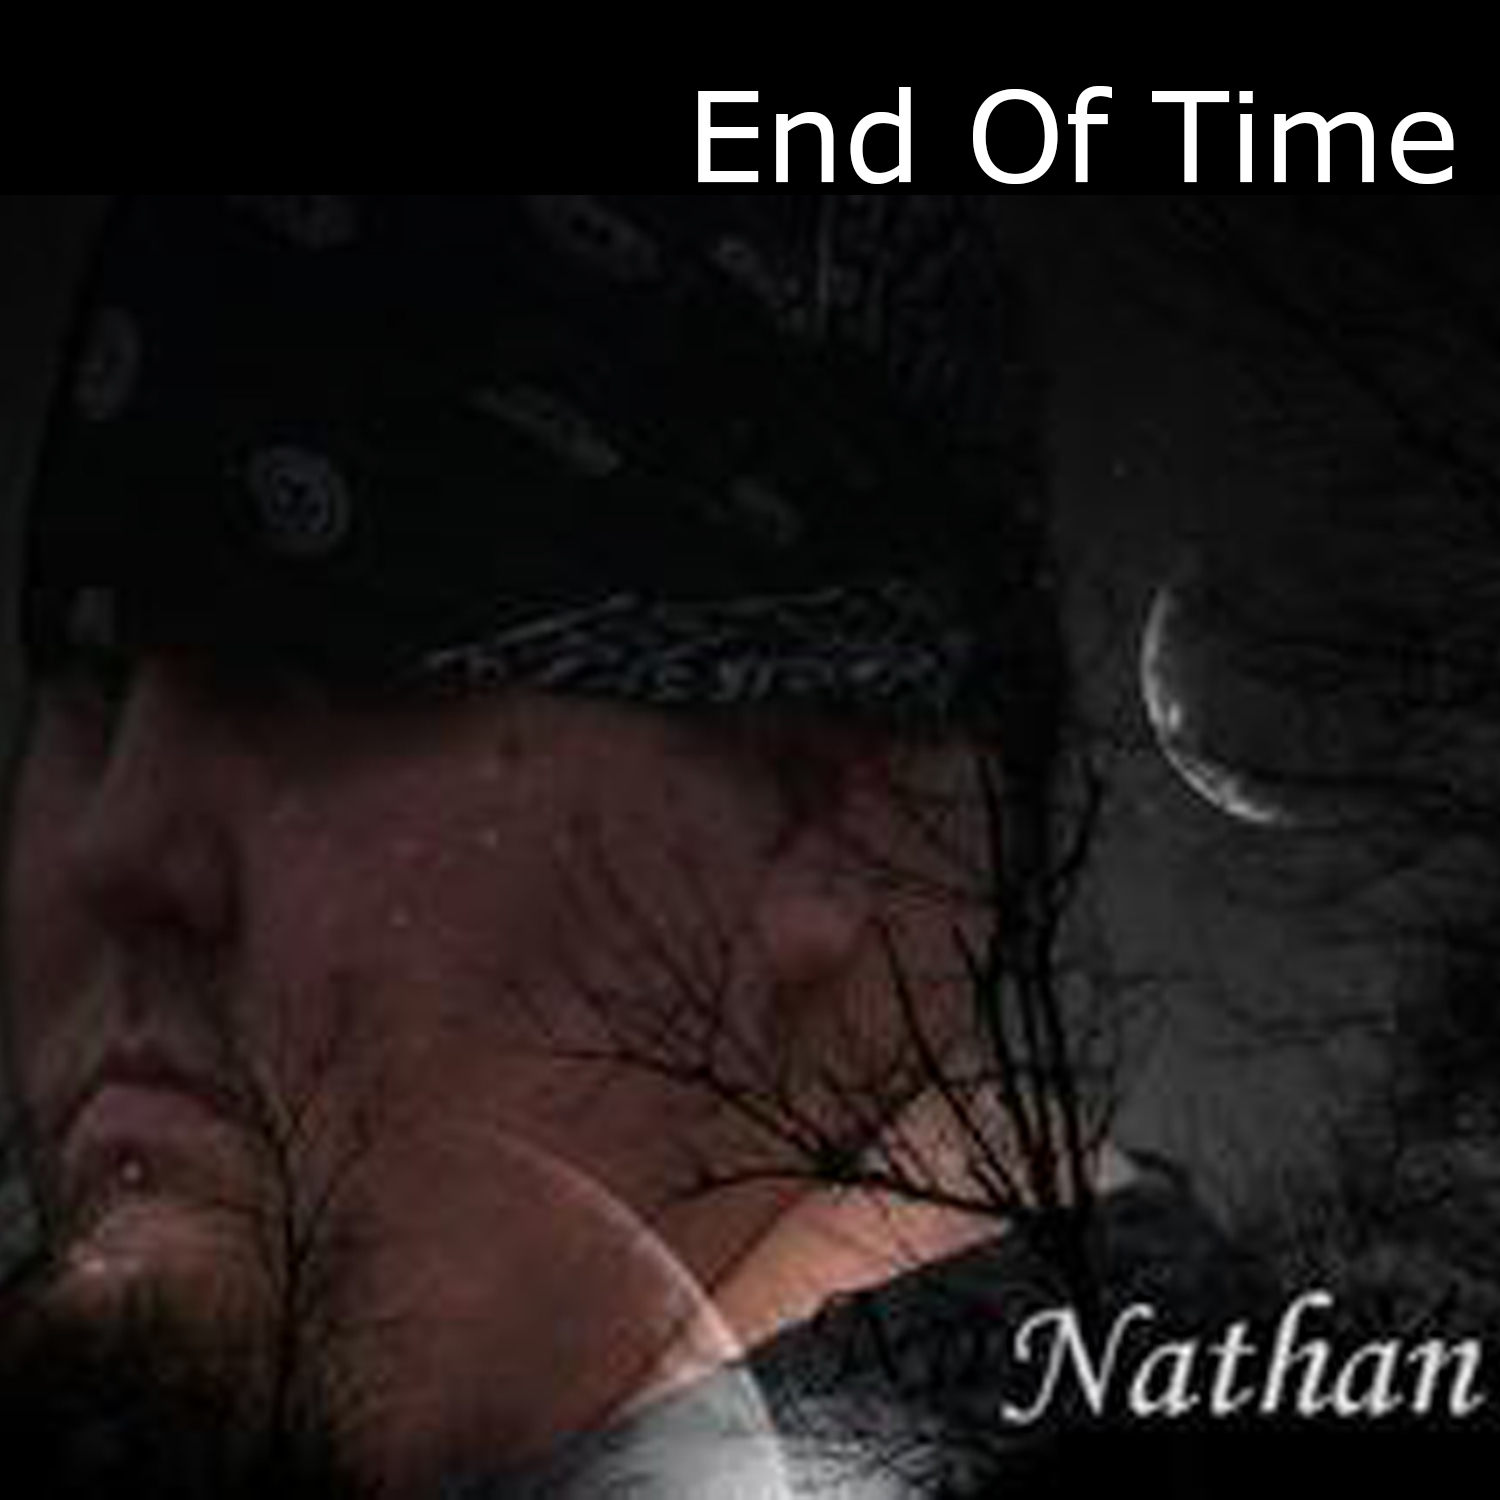 Nathan End of Time